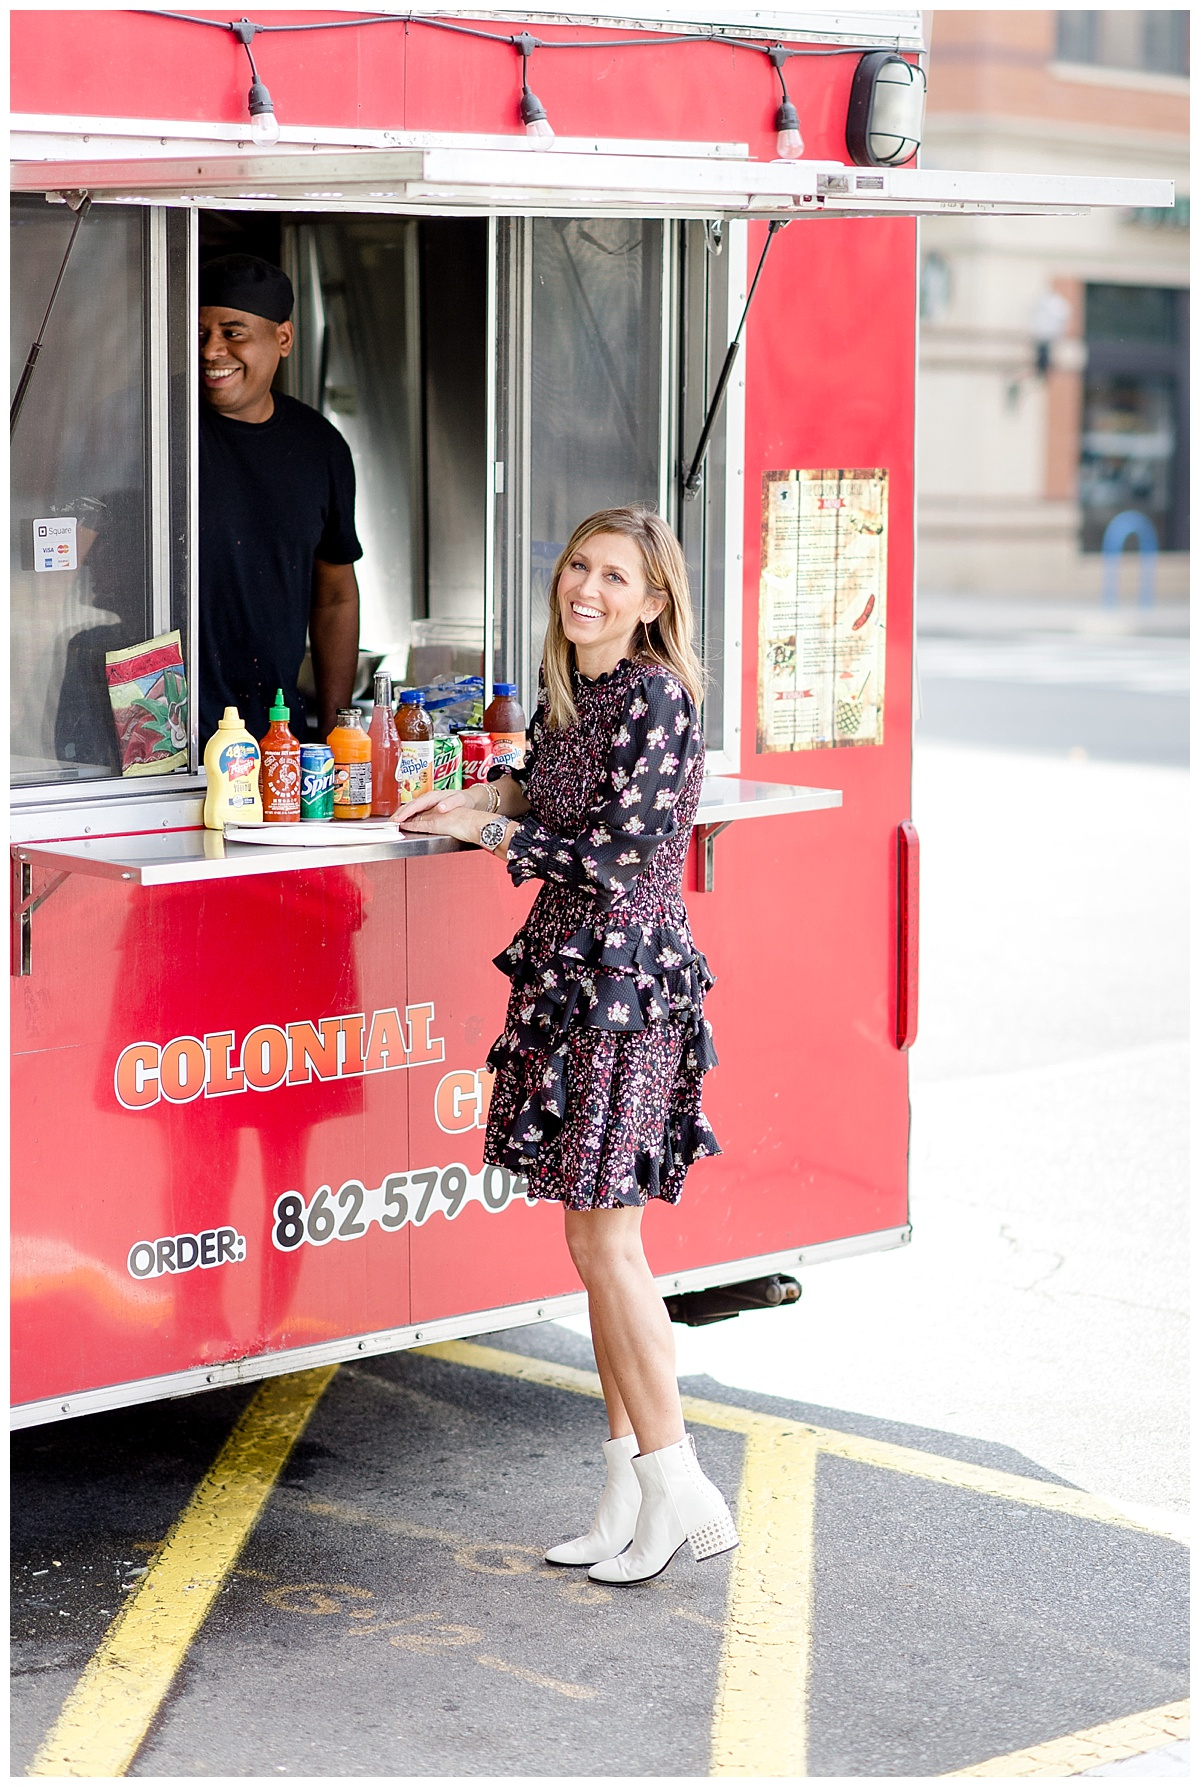 Food Truck and White Boots_0397.jpg